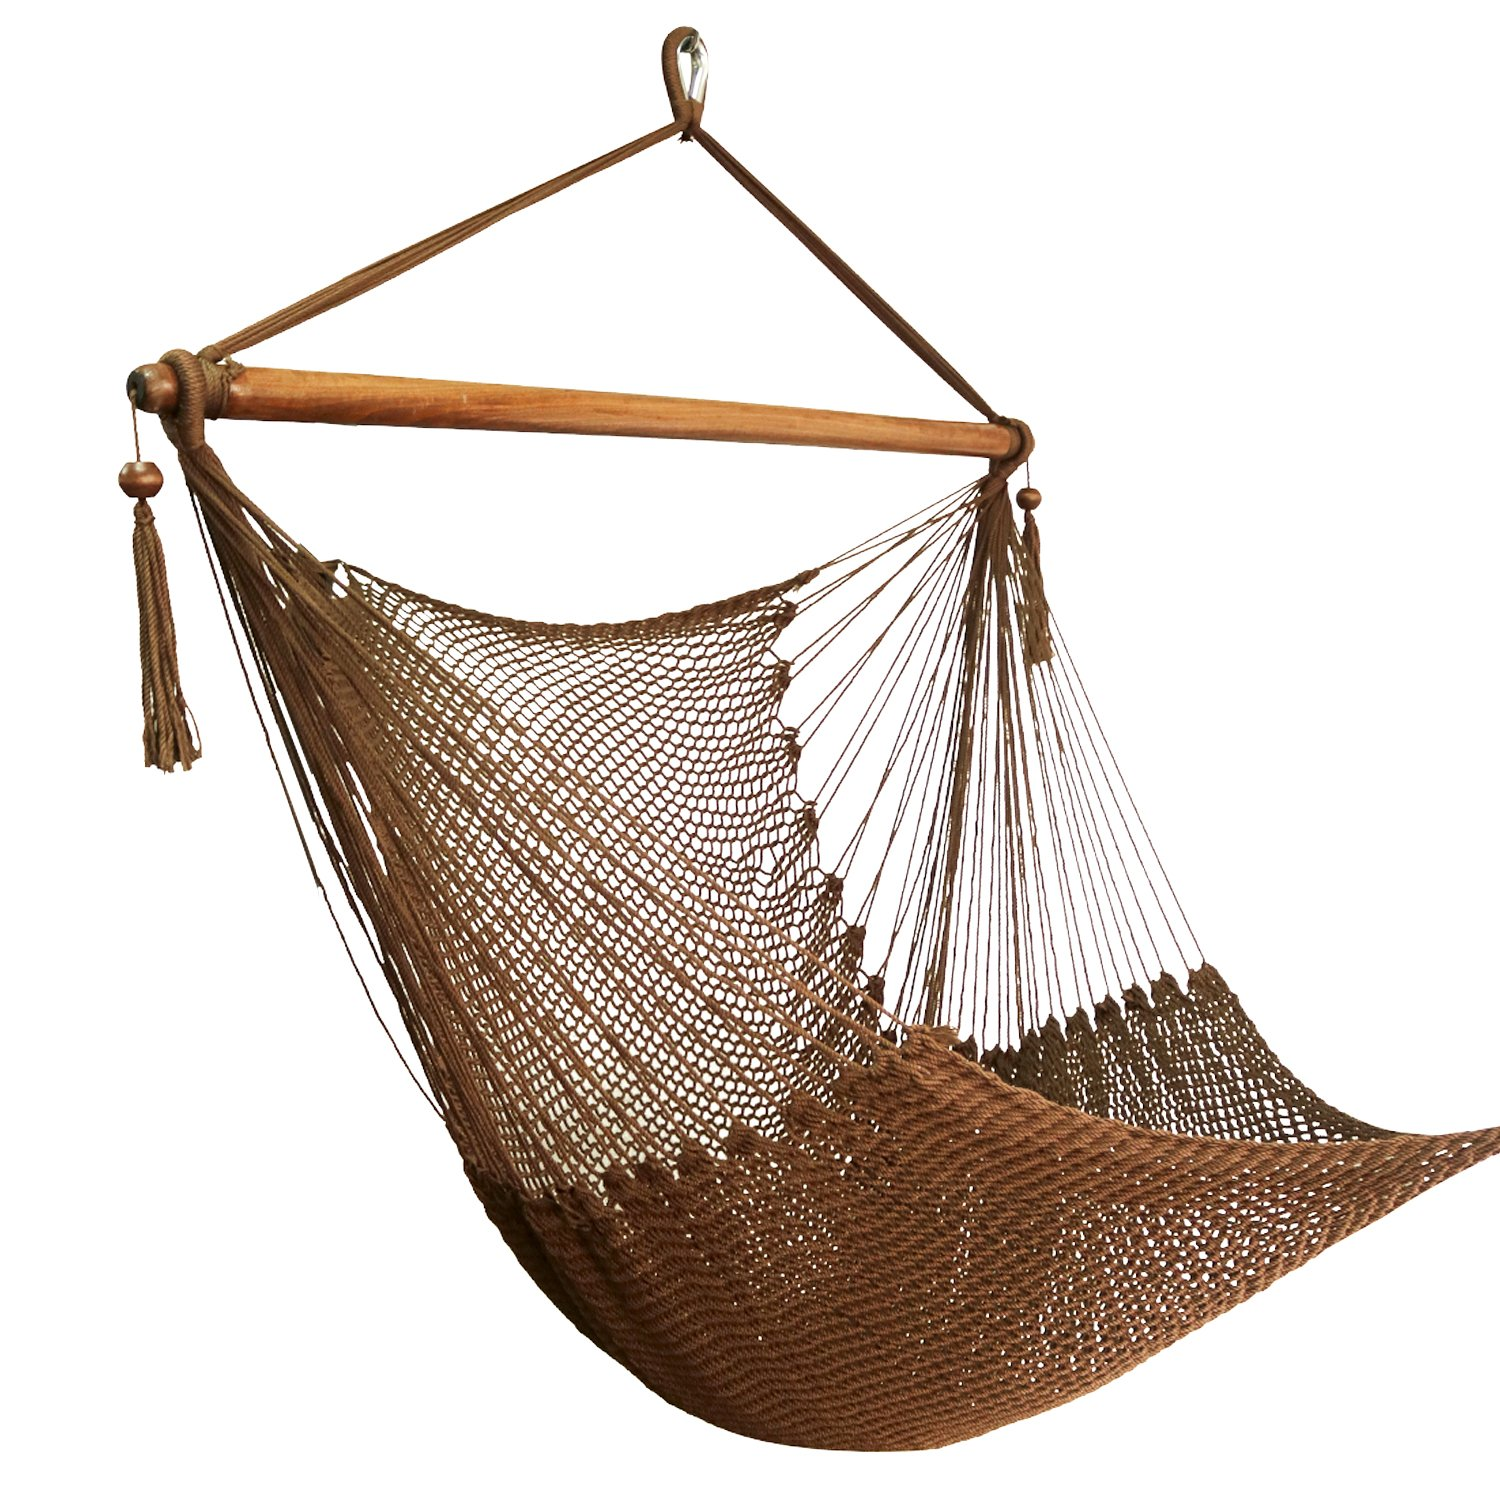 Best Sunshine Large Caribbean Hammock Hanging Chair with Footrest, Large Hammock Net Chair, Polyester (Brown)